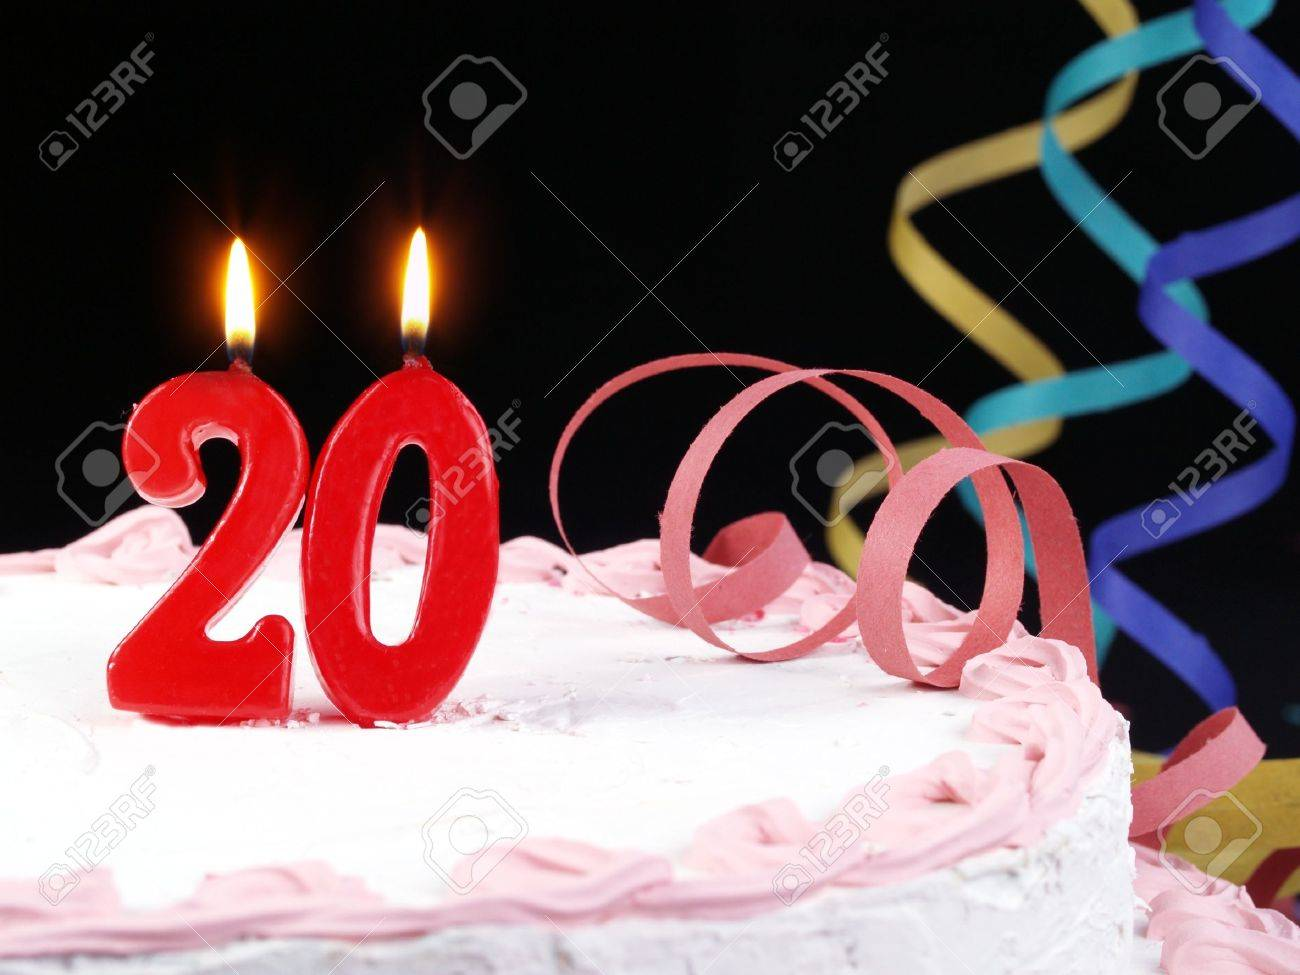 Birthday Cake With Red Candles Showing Nr 20 Stock Photo Picture